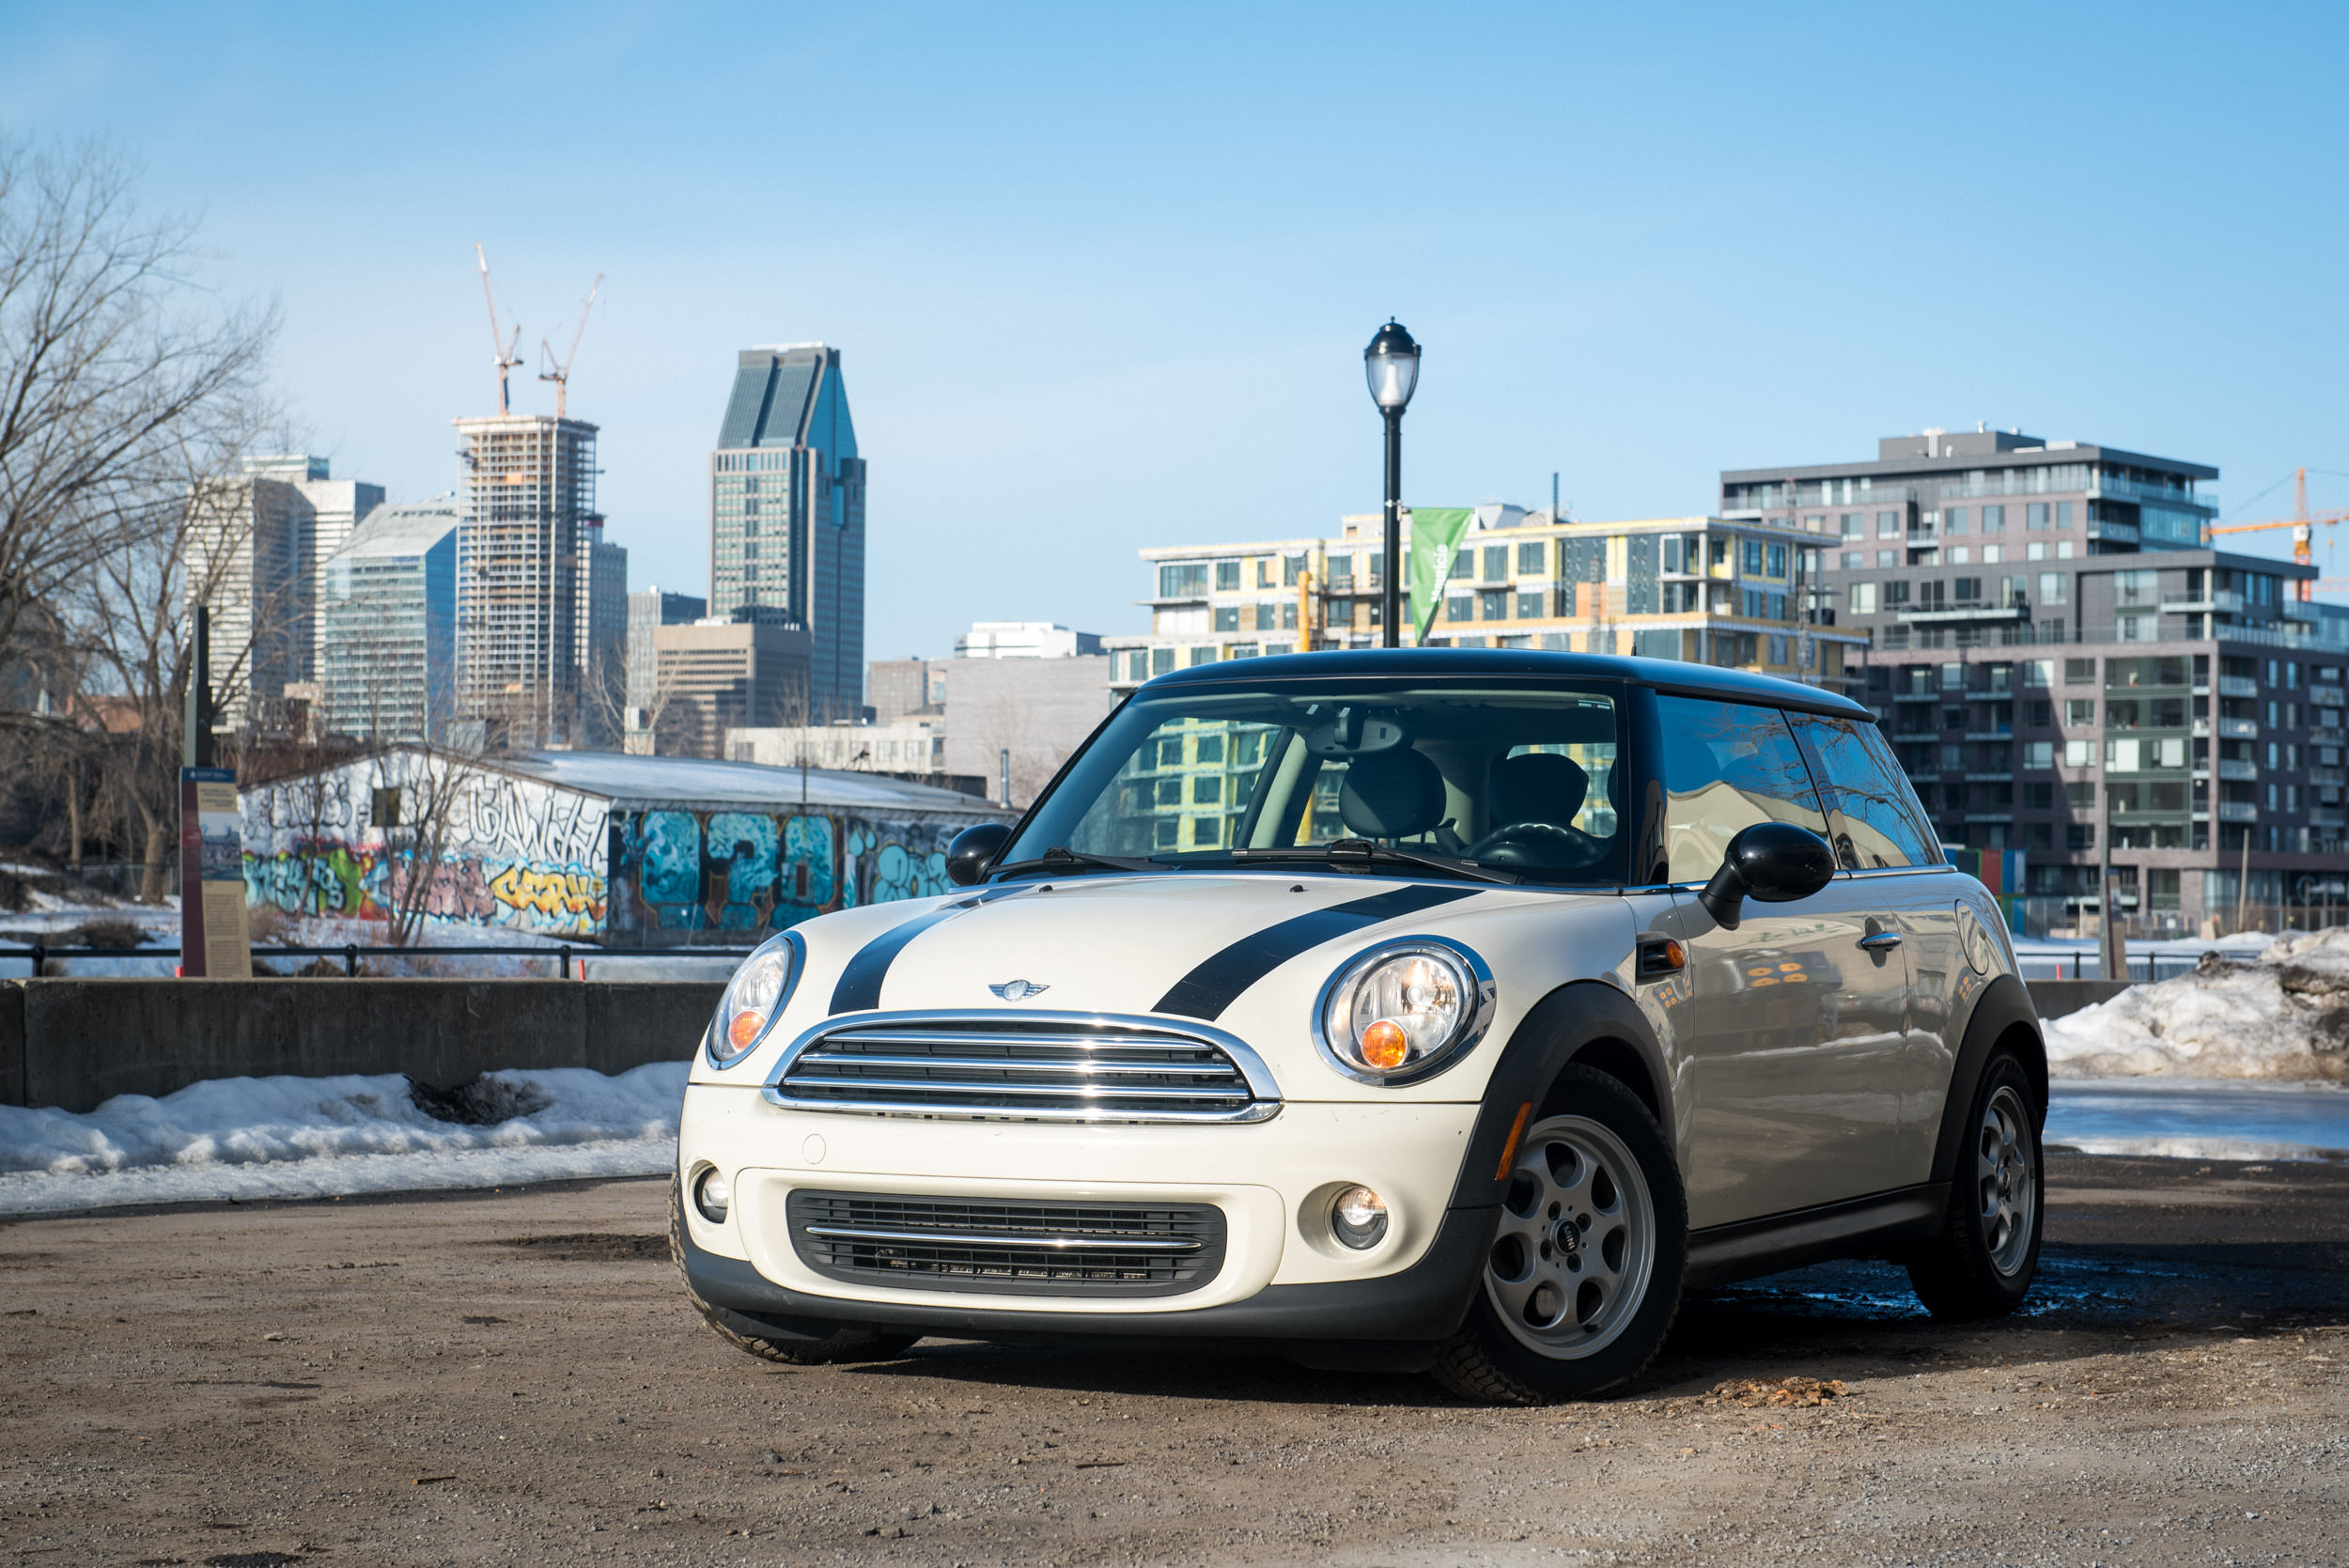 mini cooper 2012 knightbridge